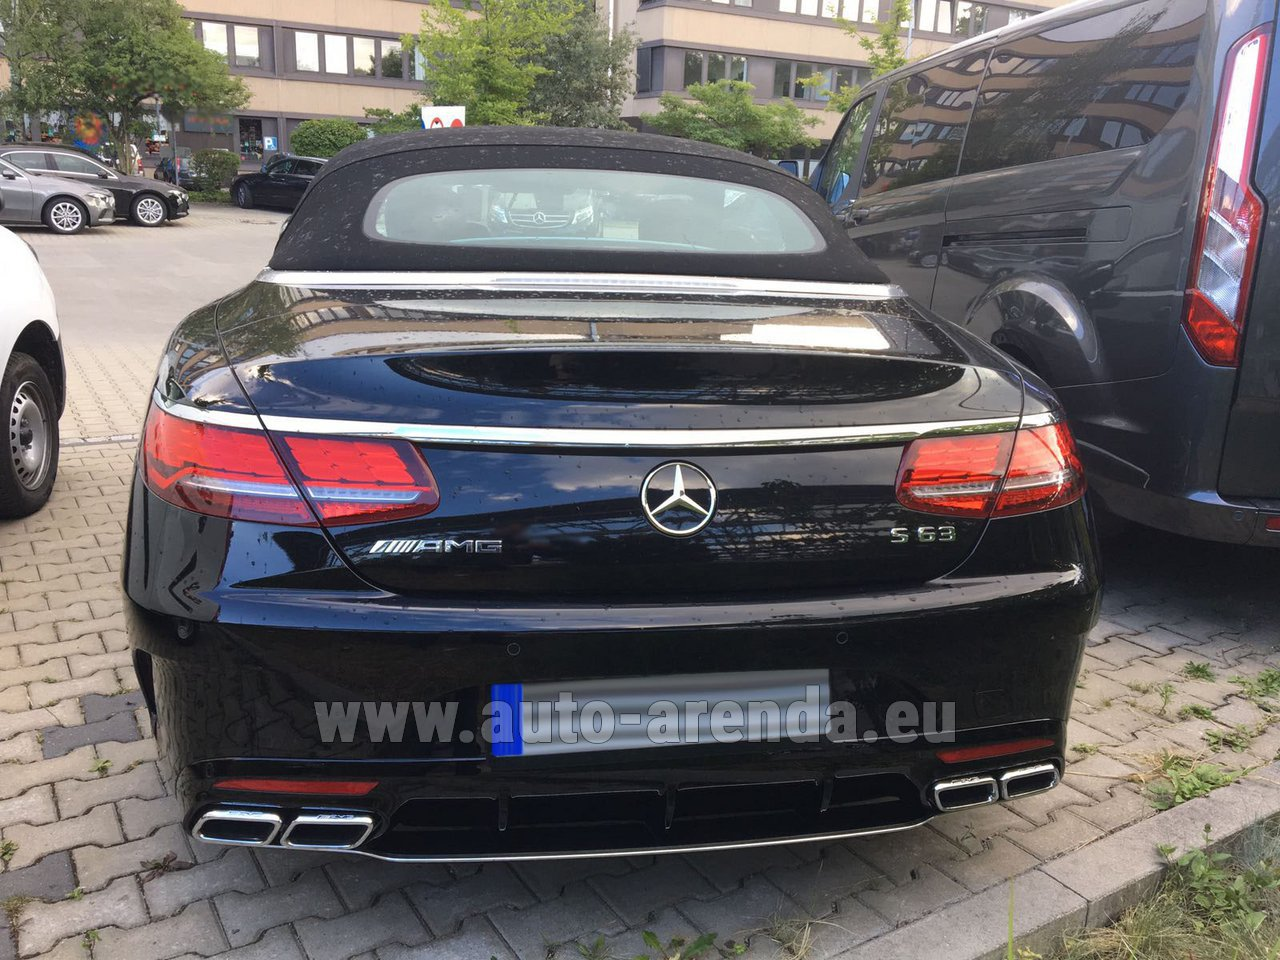 rent mercedes benz s 63 amg cabriolet v8 biturbo 4matic in frejus. Black Bedroom Furniture Sets. Home Design Ideas